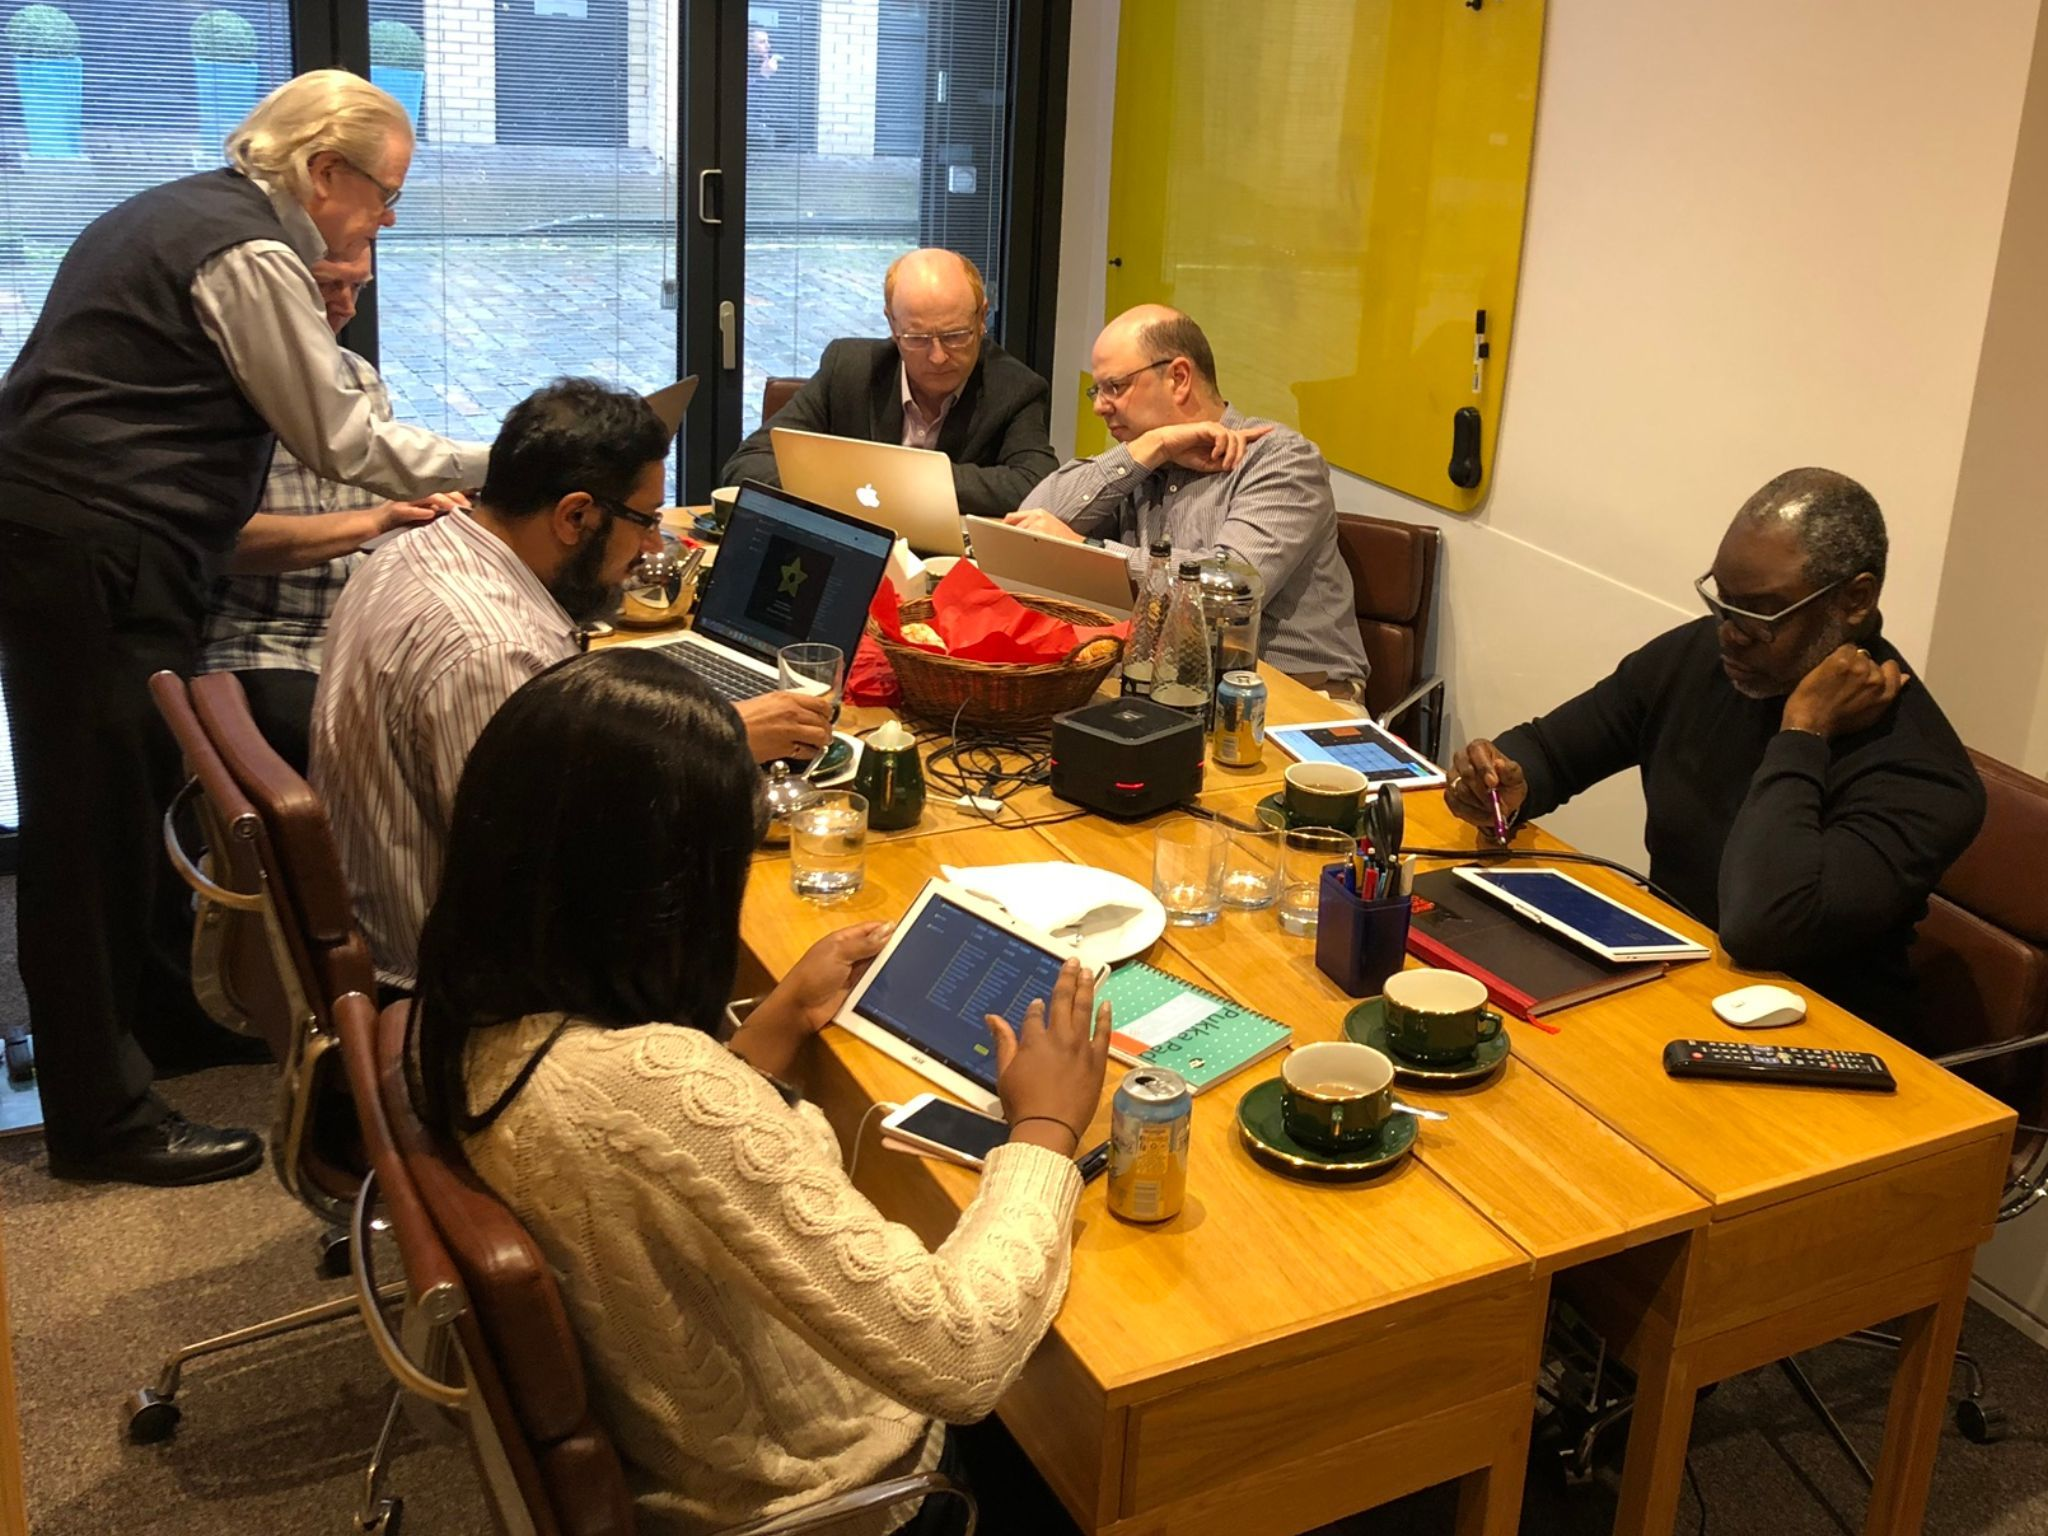 Runagood® Discovery Lunch - Introduction to Becoming an AI Business Advisor®Held every Tuesday in the Runagood® Offices from 1:00pm to 2:30pmCost: £10